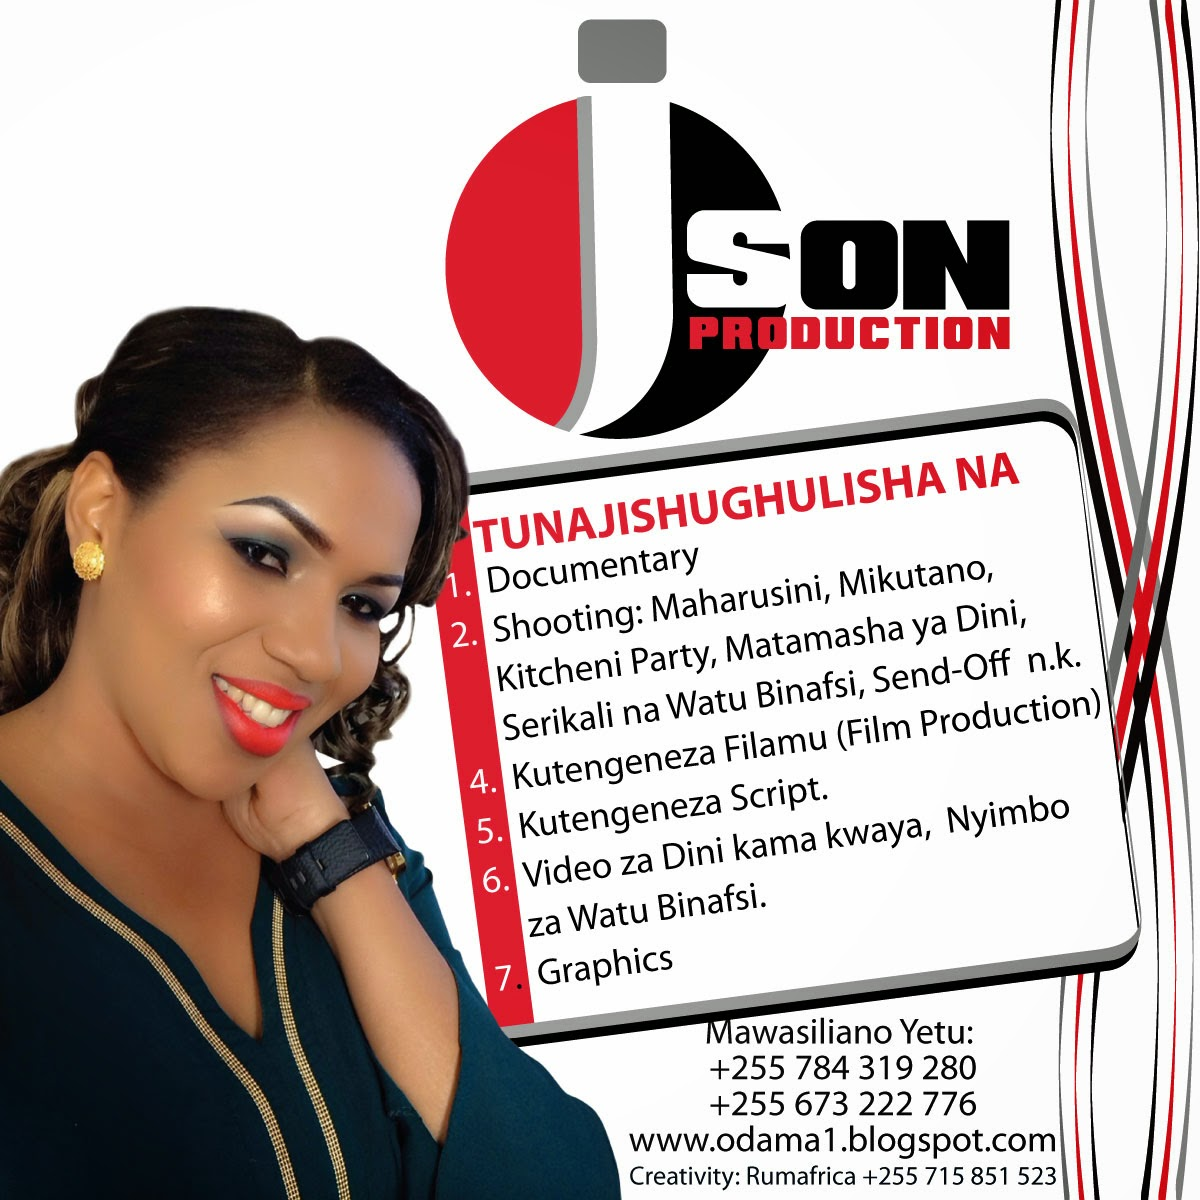 J-SON PRODUCTION NA KAZI ZAKE